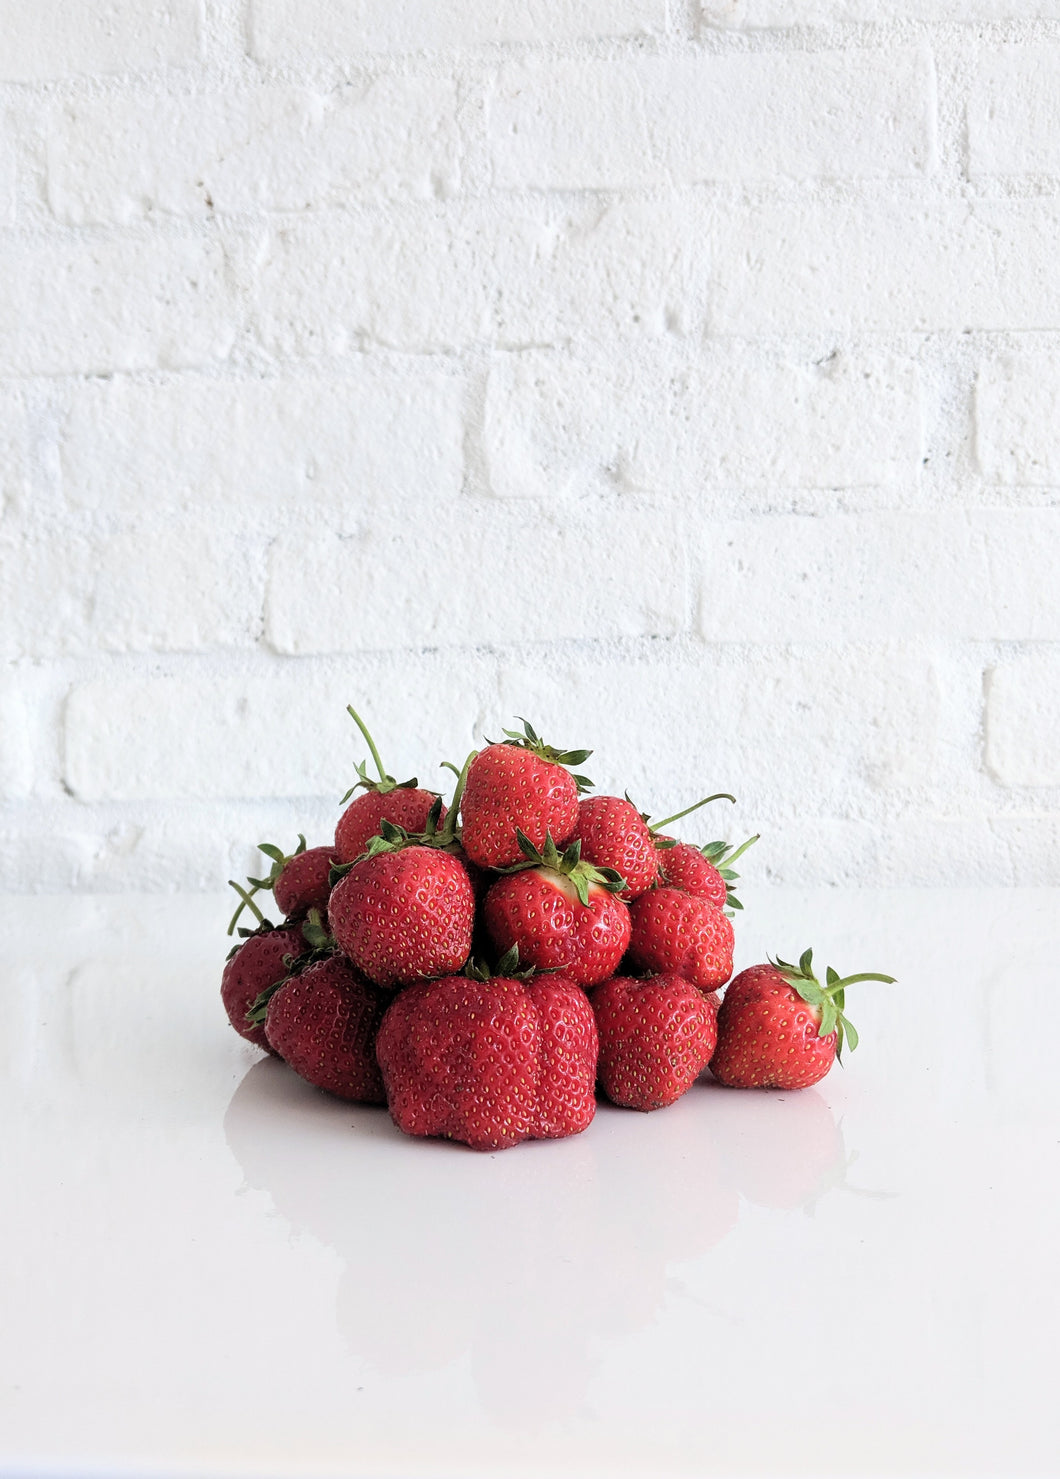 Strawberries (Conventional)